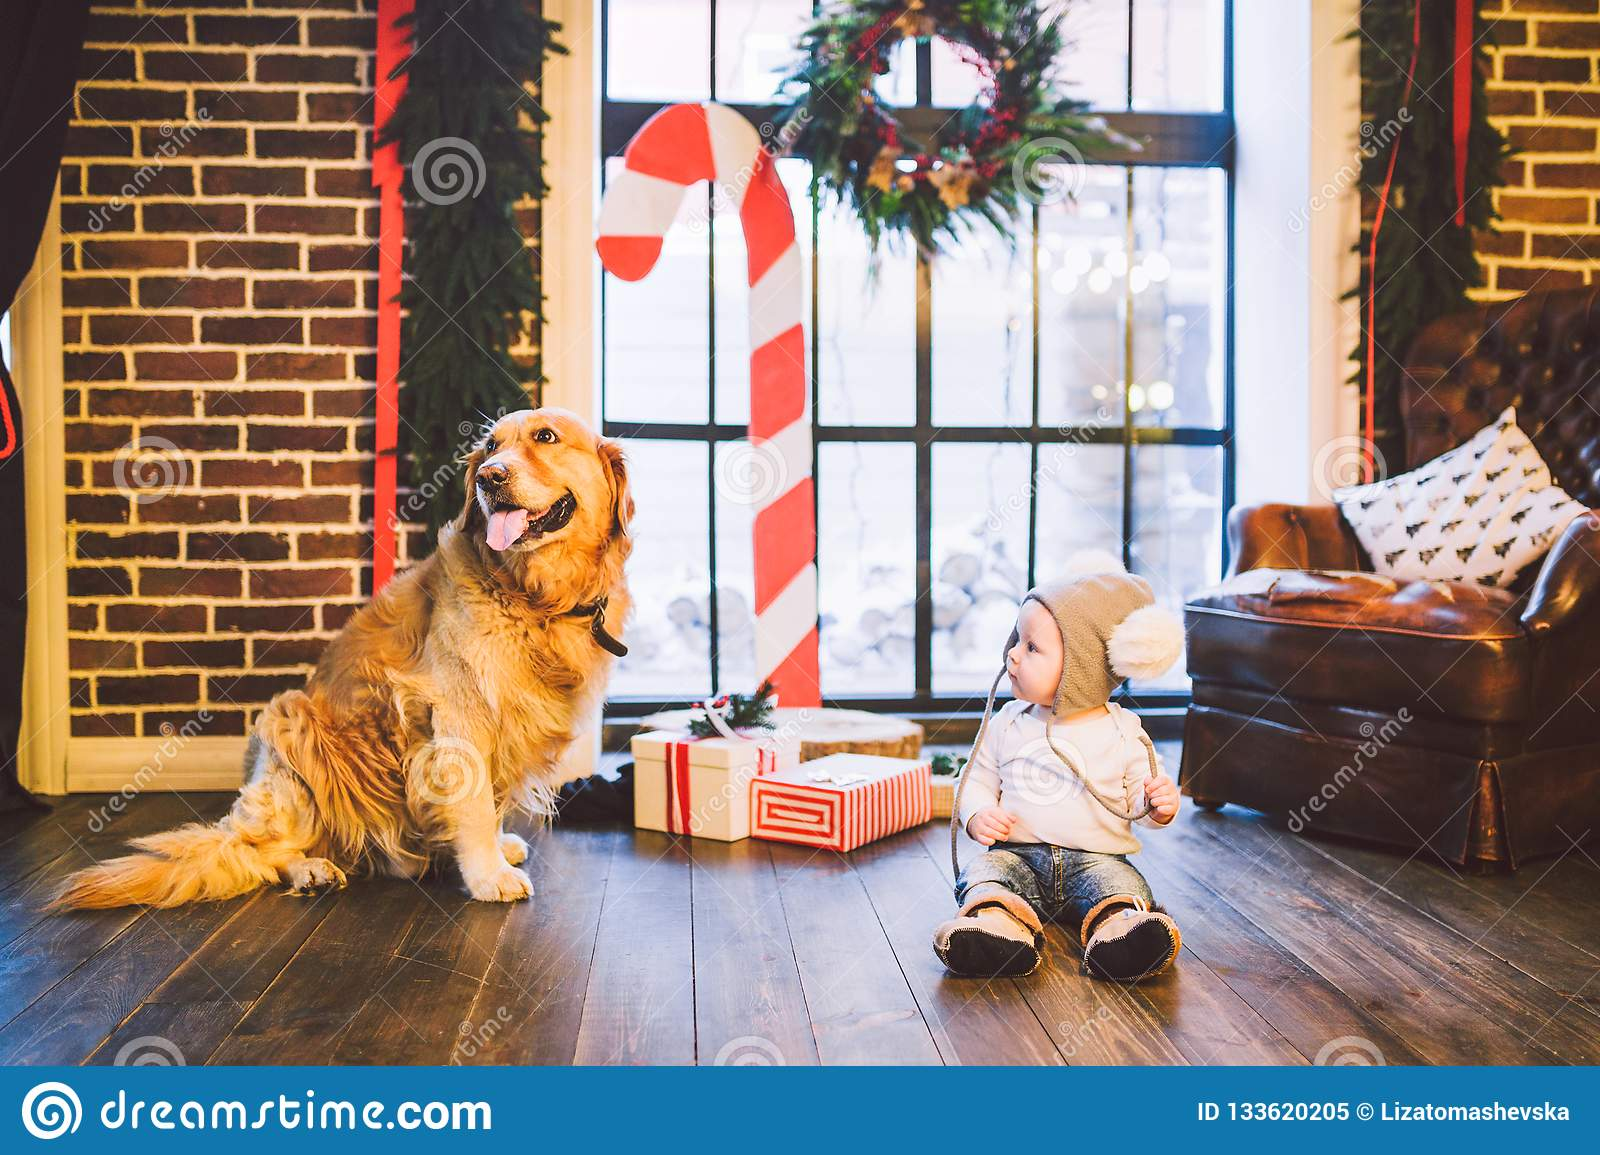 Friendship man child and dog pet. Theme Christmas New Year Winter Holidays. Baby boy crawling learns walk wooden floor decorated